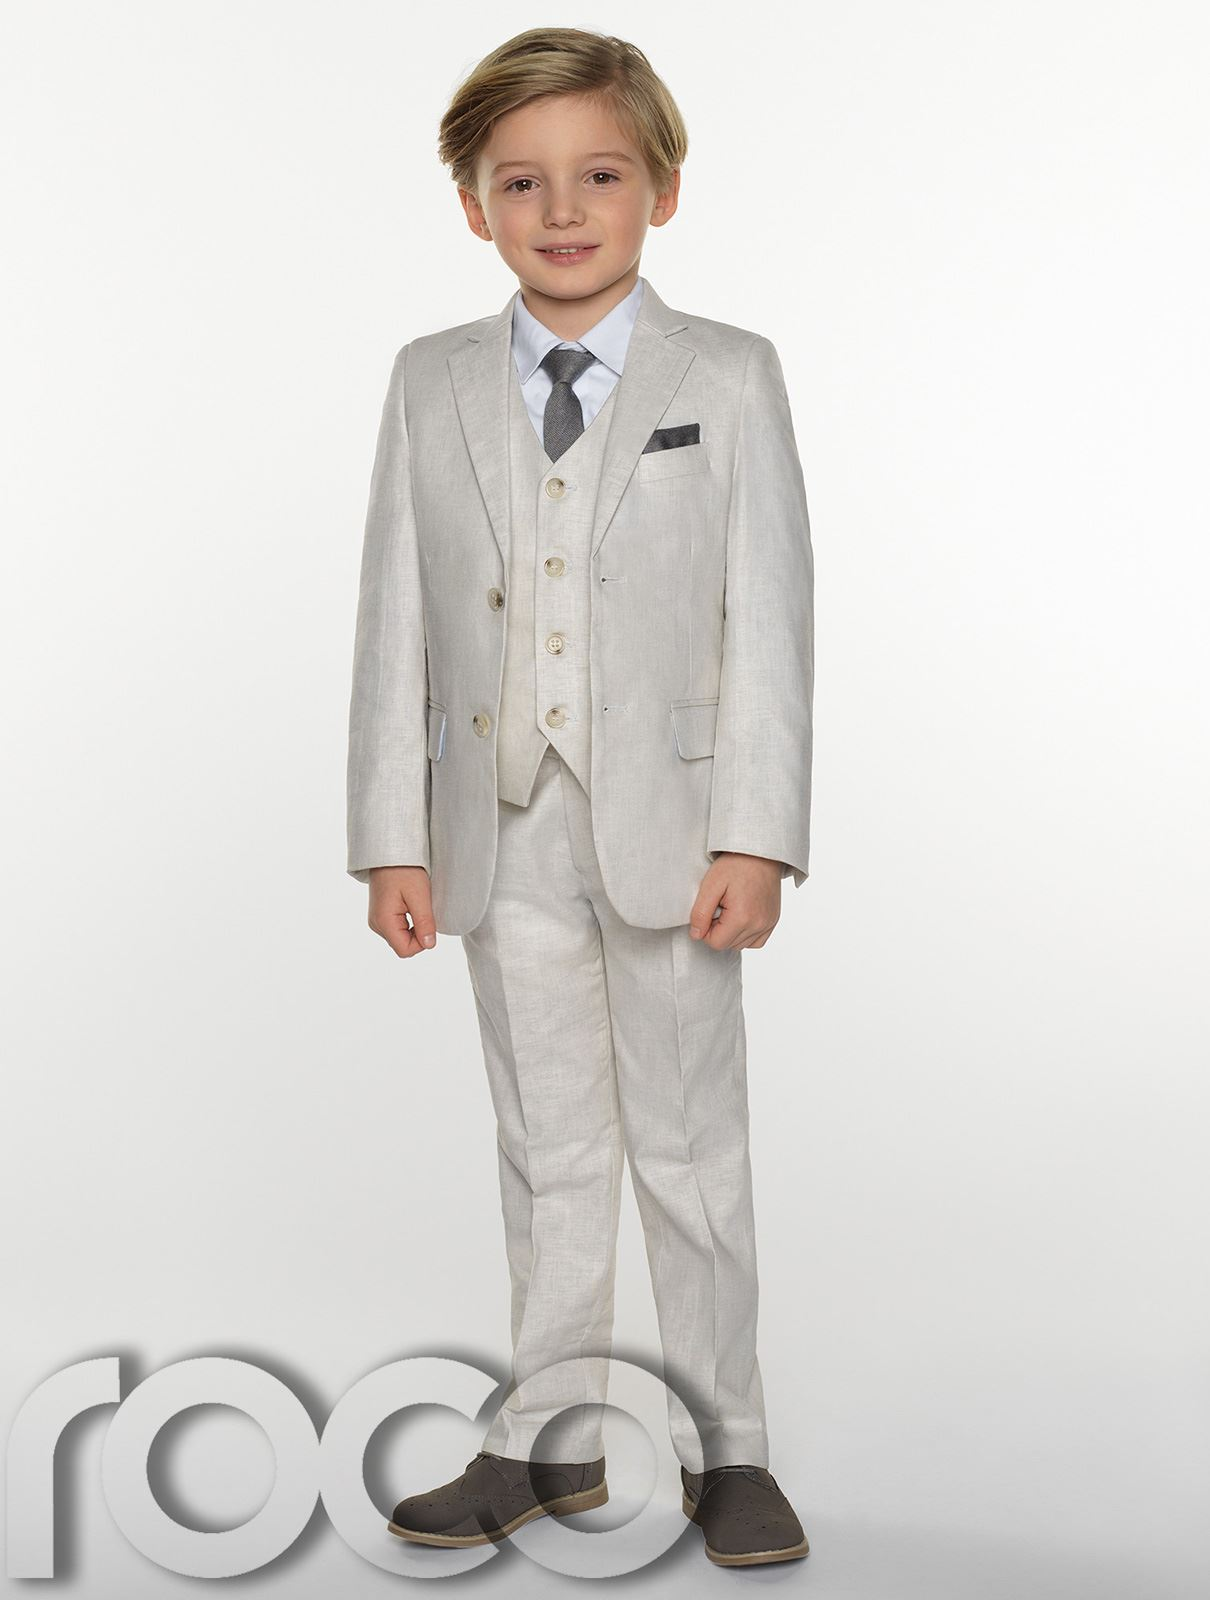 Find great deals on eBay for boys suit sets. Shop with confidence.